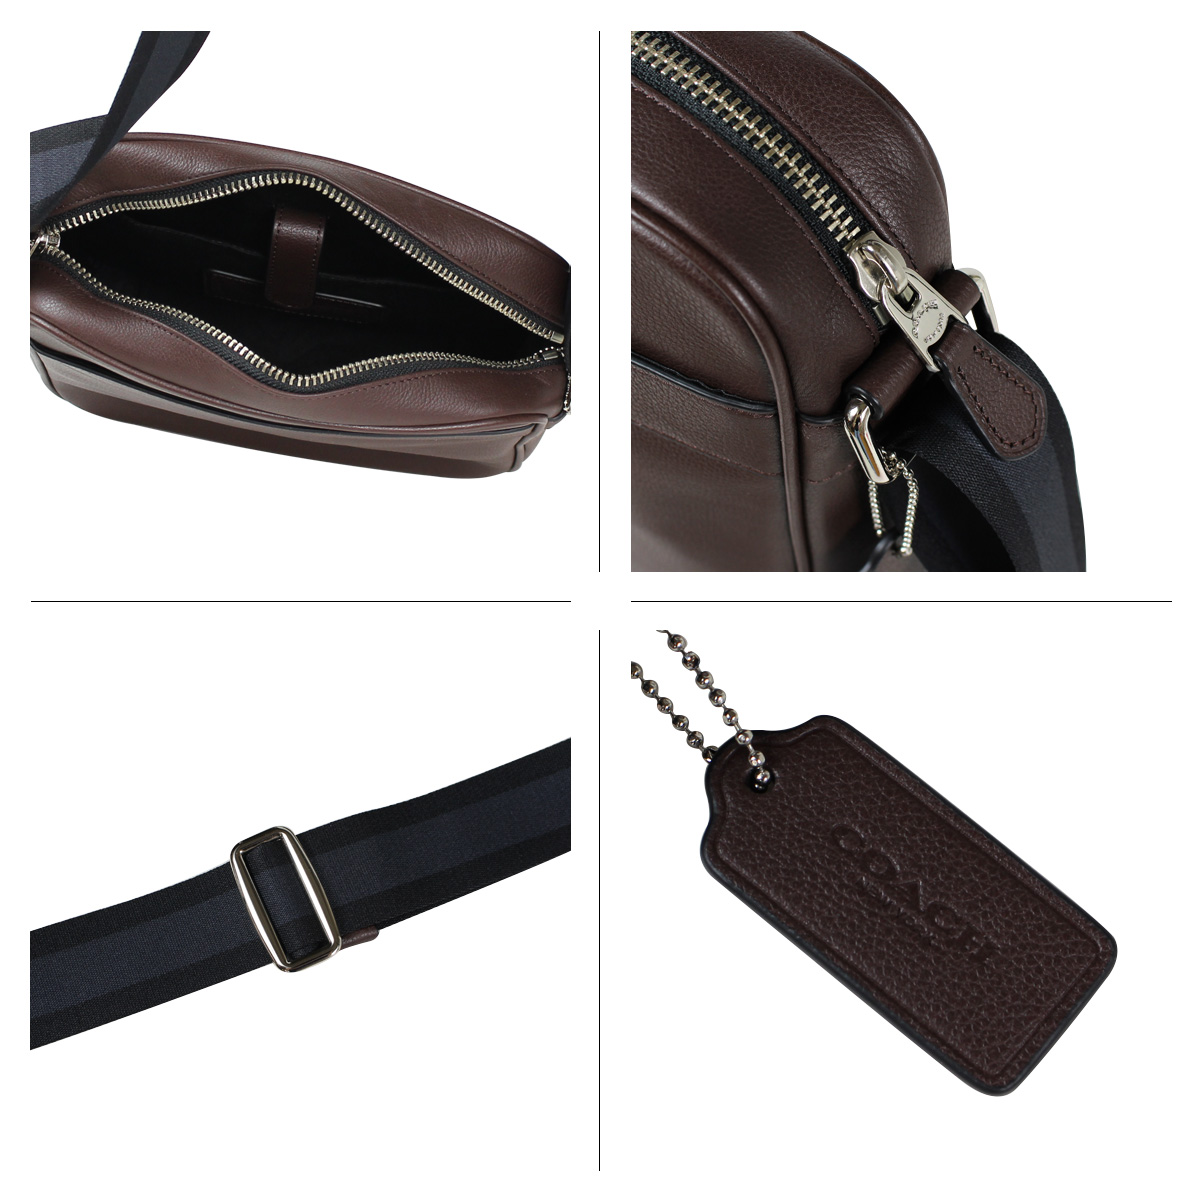 Coach Flight Bag Mahogany Adjustable Strap With 295 75 Cm Drop For Shoulder Or Crossbody Wear